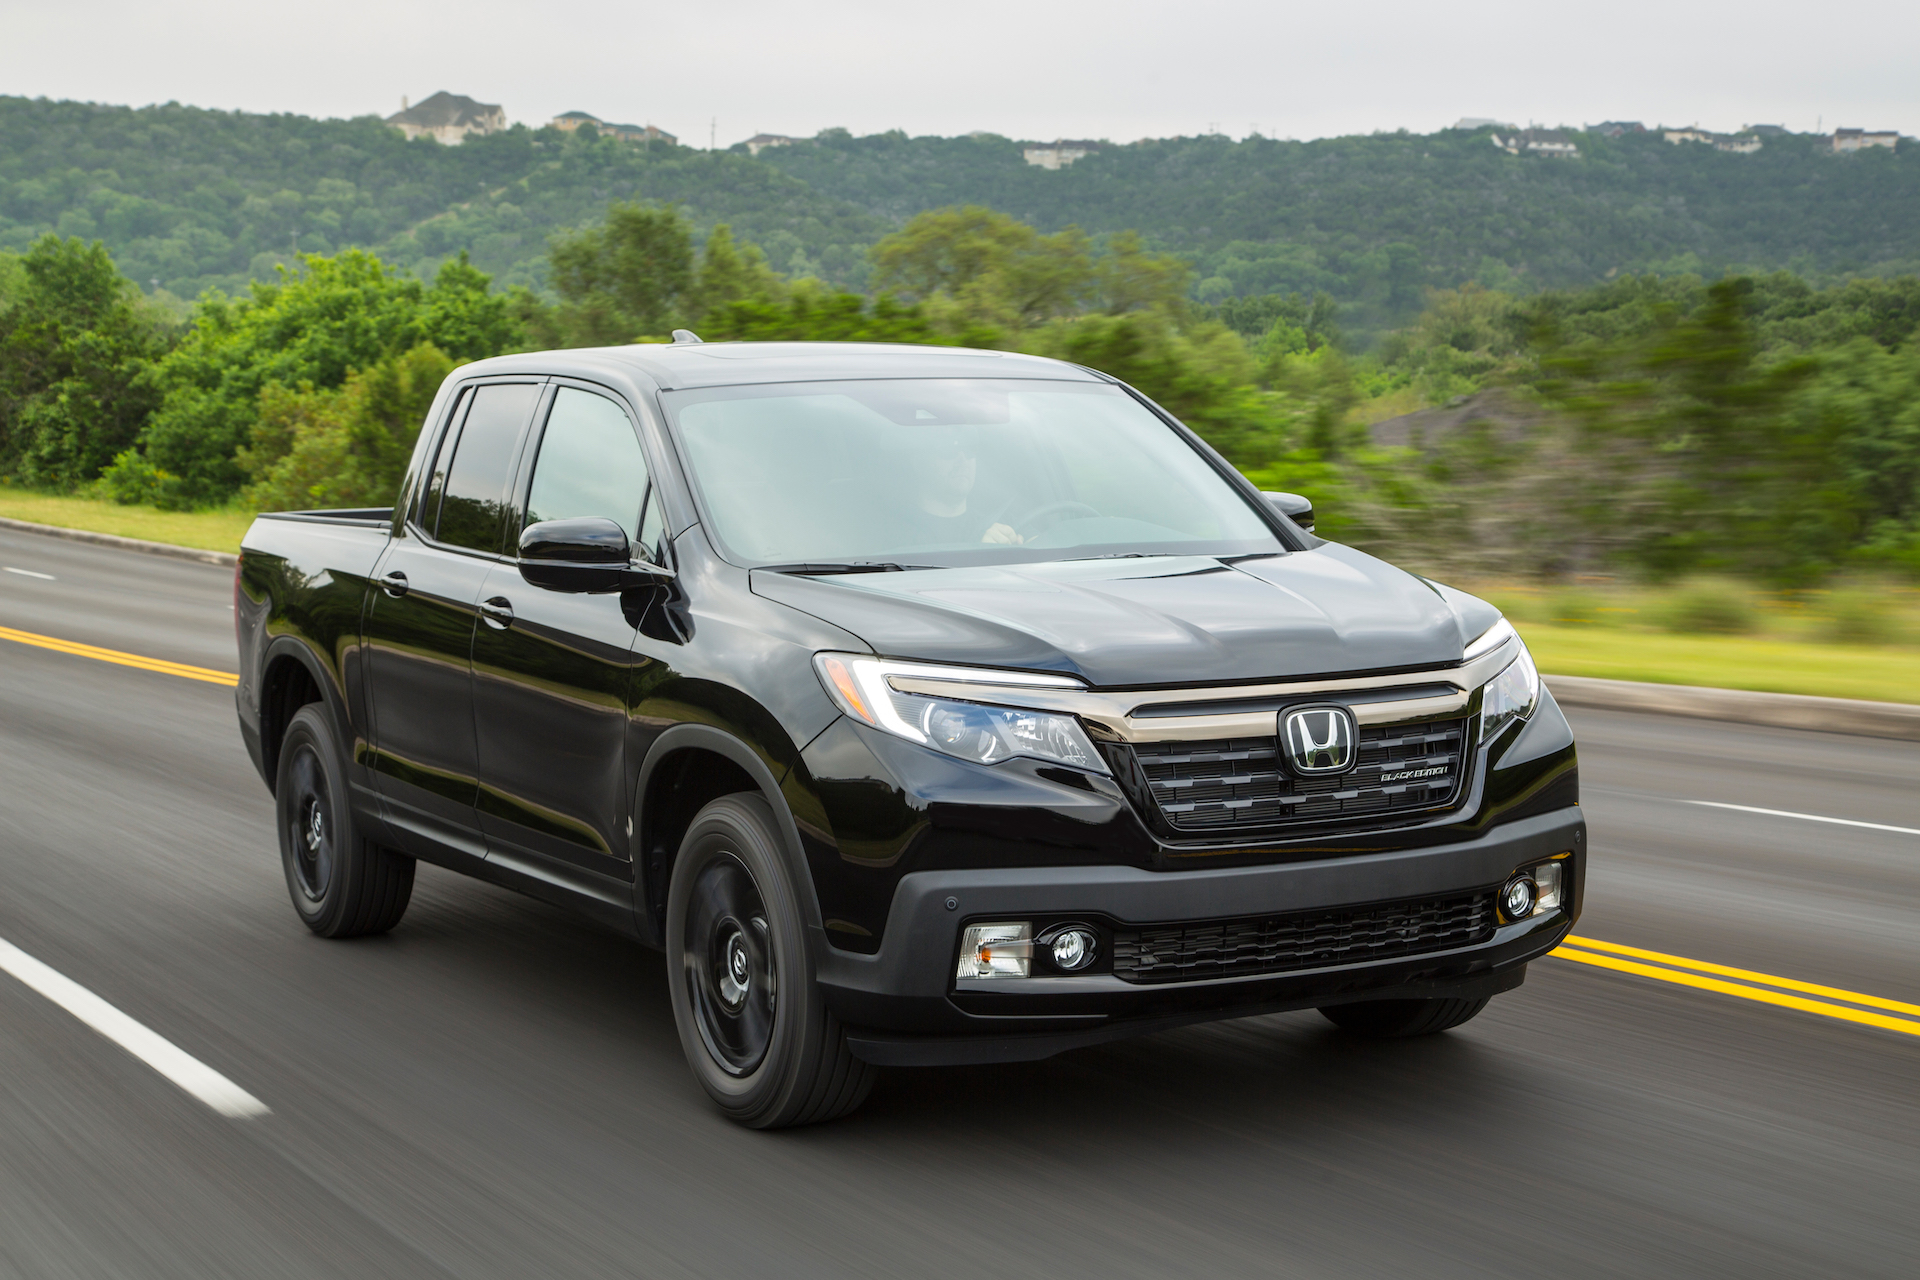 2017 honda ridgeline_100553876_h 2017 honda ridgeline recalled to fix electrical glitch 2017 Honda Ridgeline Interior at honlapkeszites.co